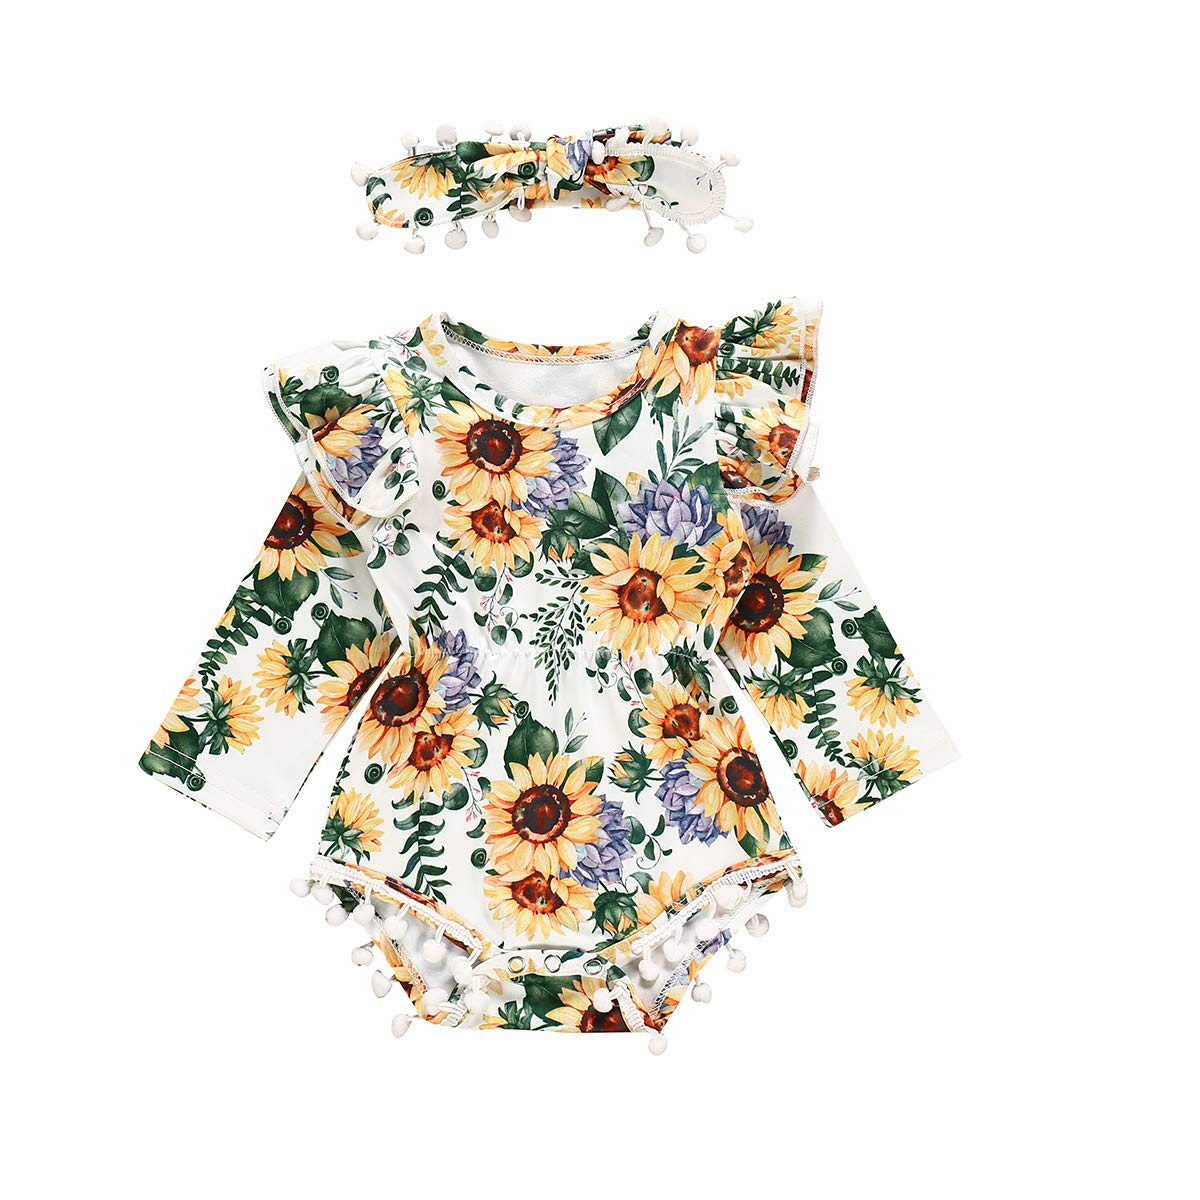 Baby Girls Sunflower Outfits Toddler Girl Long Sleeve Ruffle Romper with Headband Floral Clothes Set